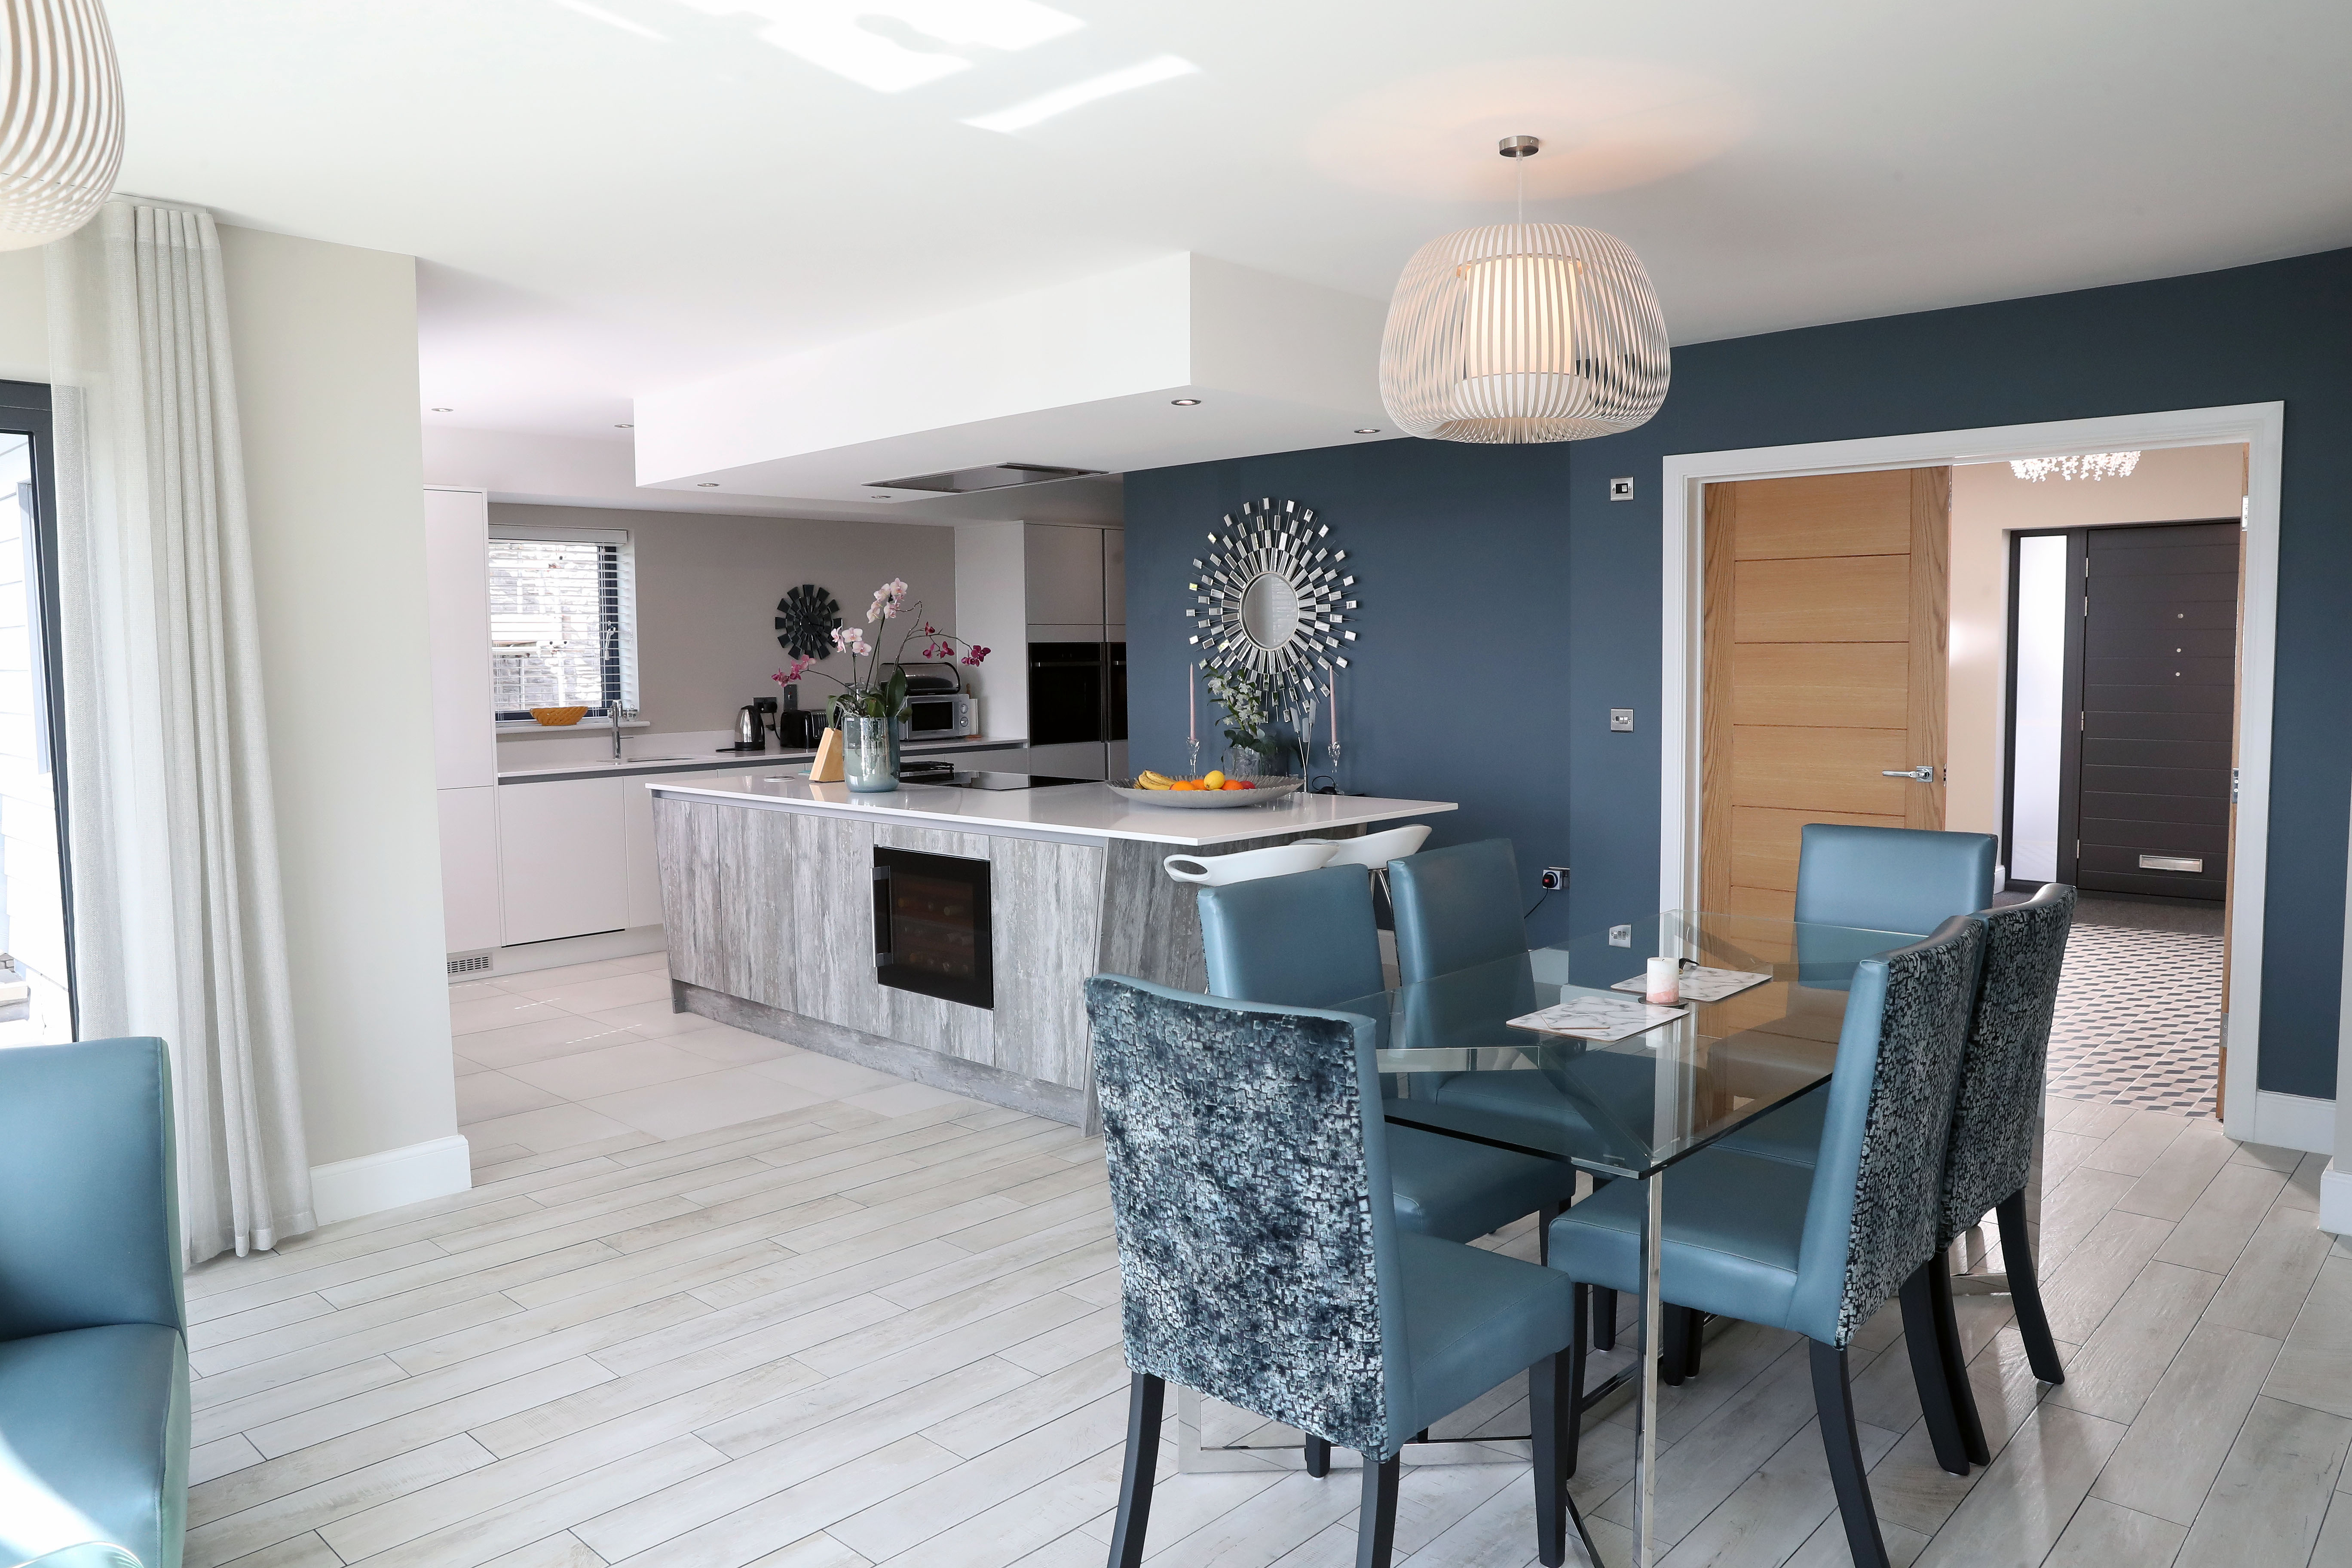 The couple's new home in Ogmore-by-Sea